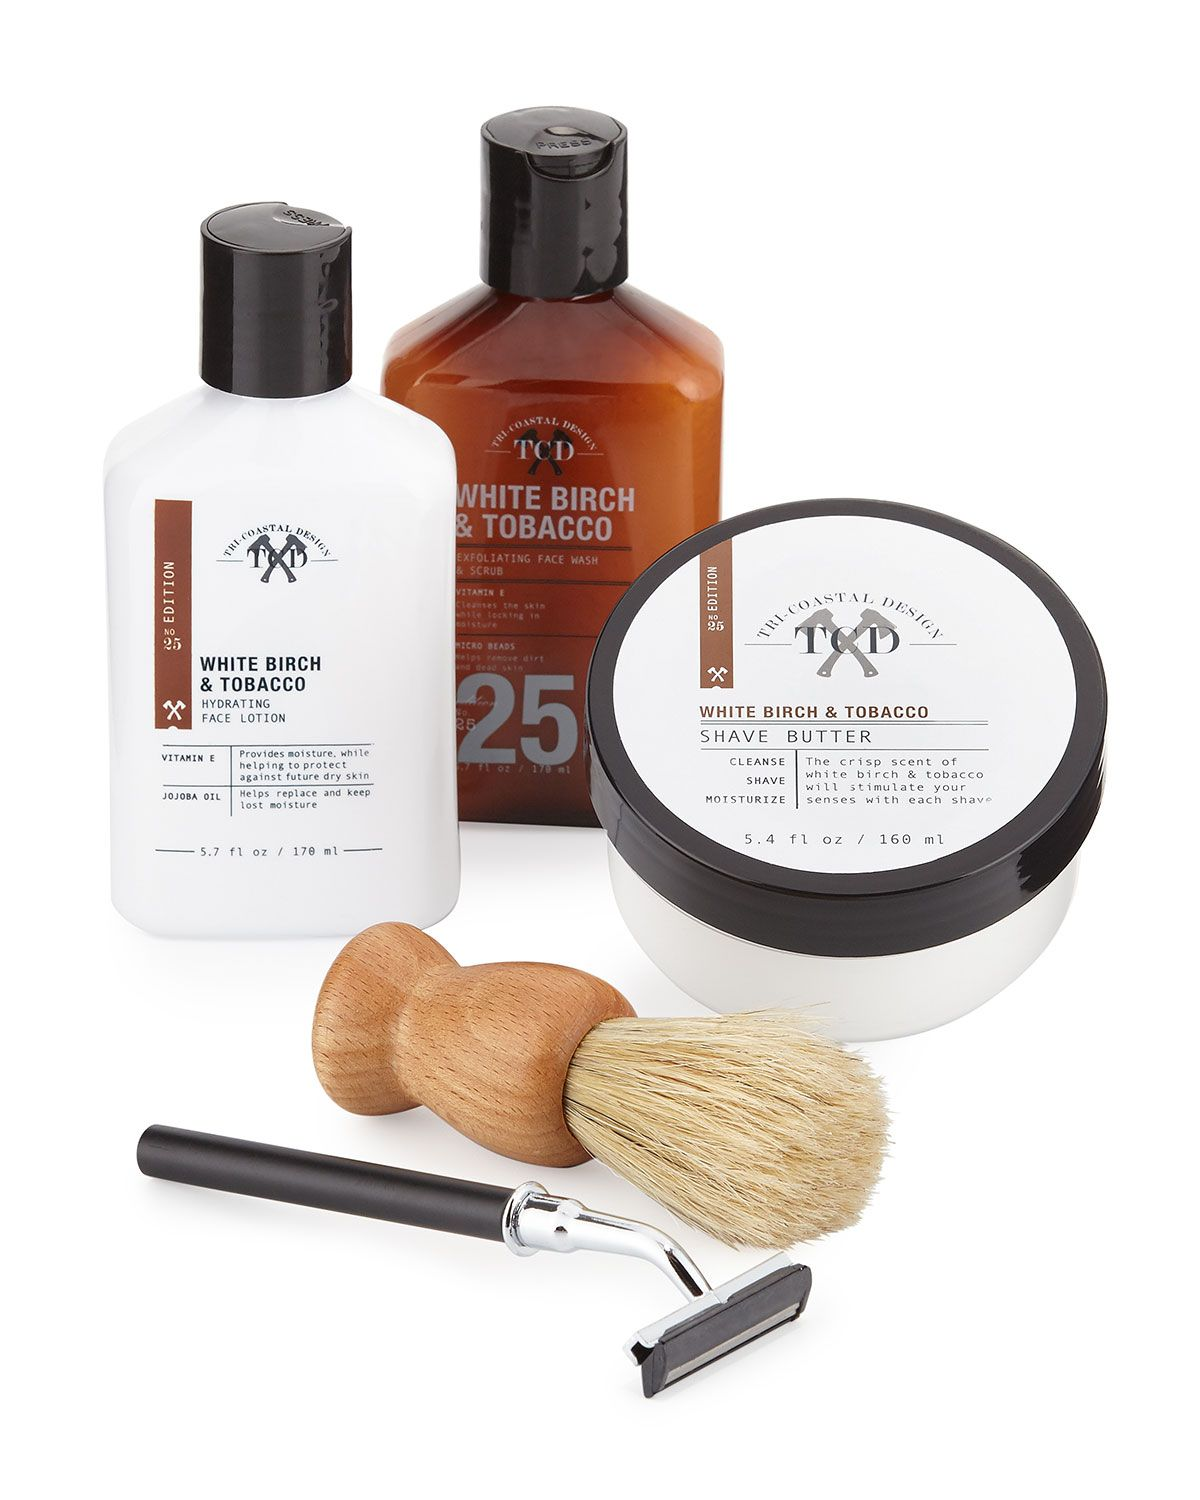 Tri Coastal Designs Clean Shave Gift Set Cosmetics Bath Body